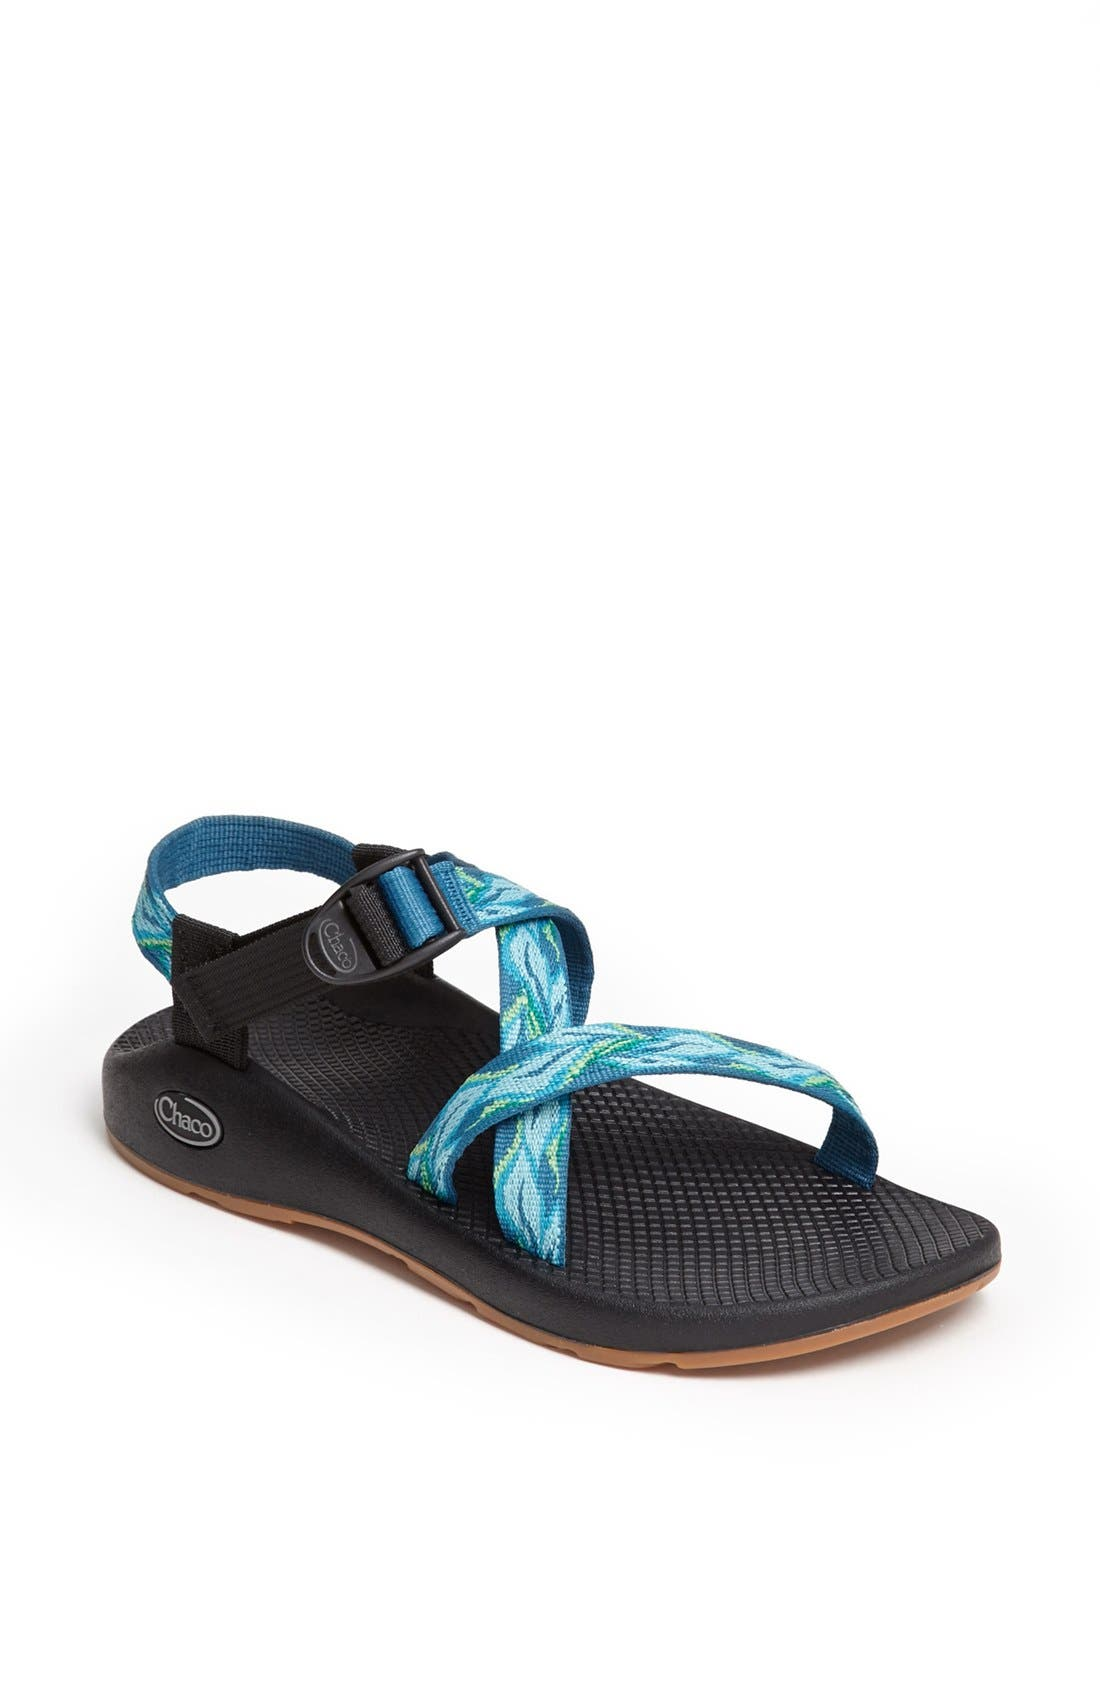 Alternate Image 1 Selected - Chaco 'Z1 Yampa' Sandal